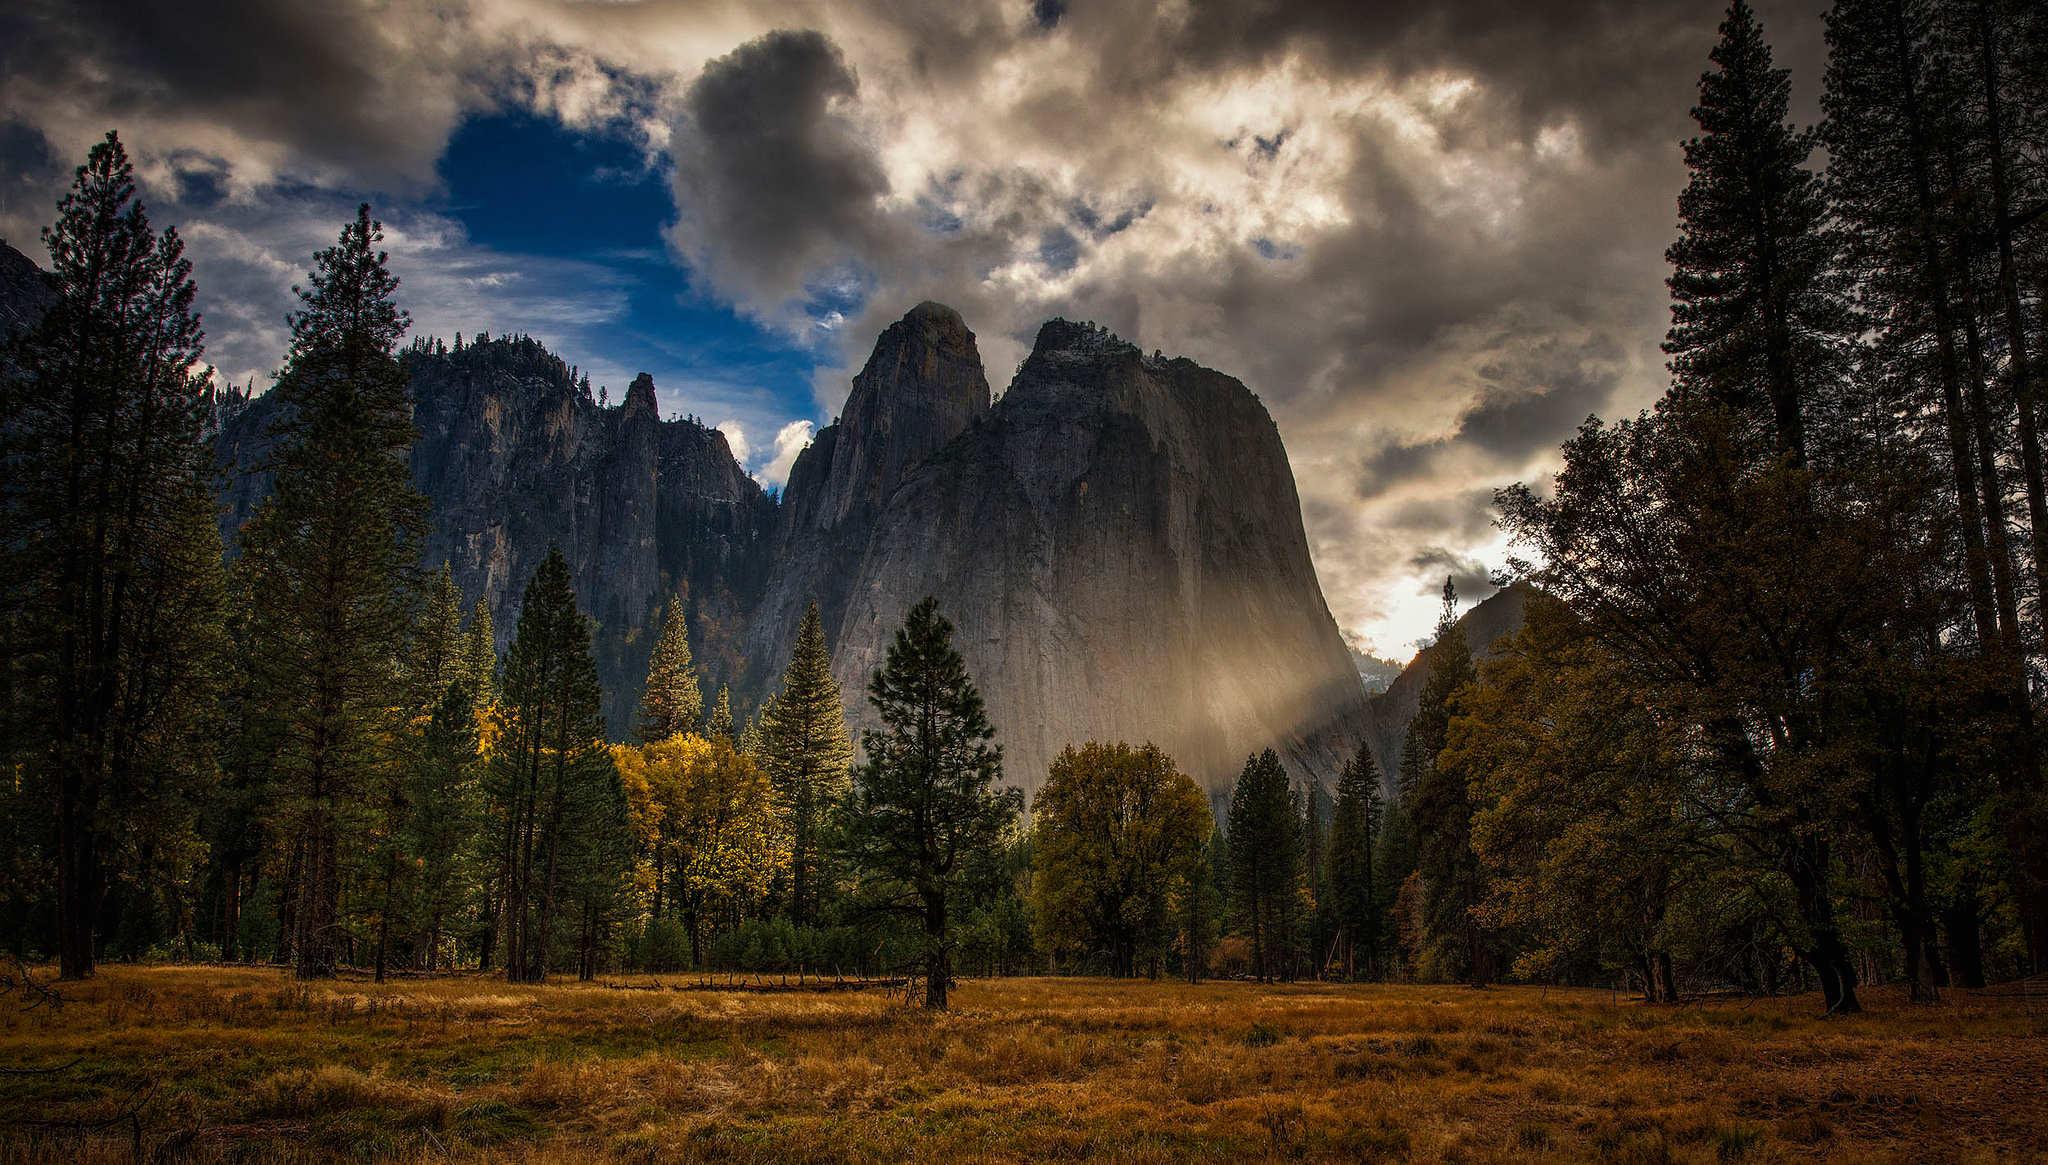 Download yosemite national park wallpaper hd gallery - Yosemite national park hd wallpaper ...